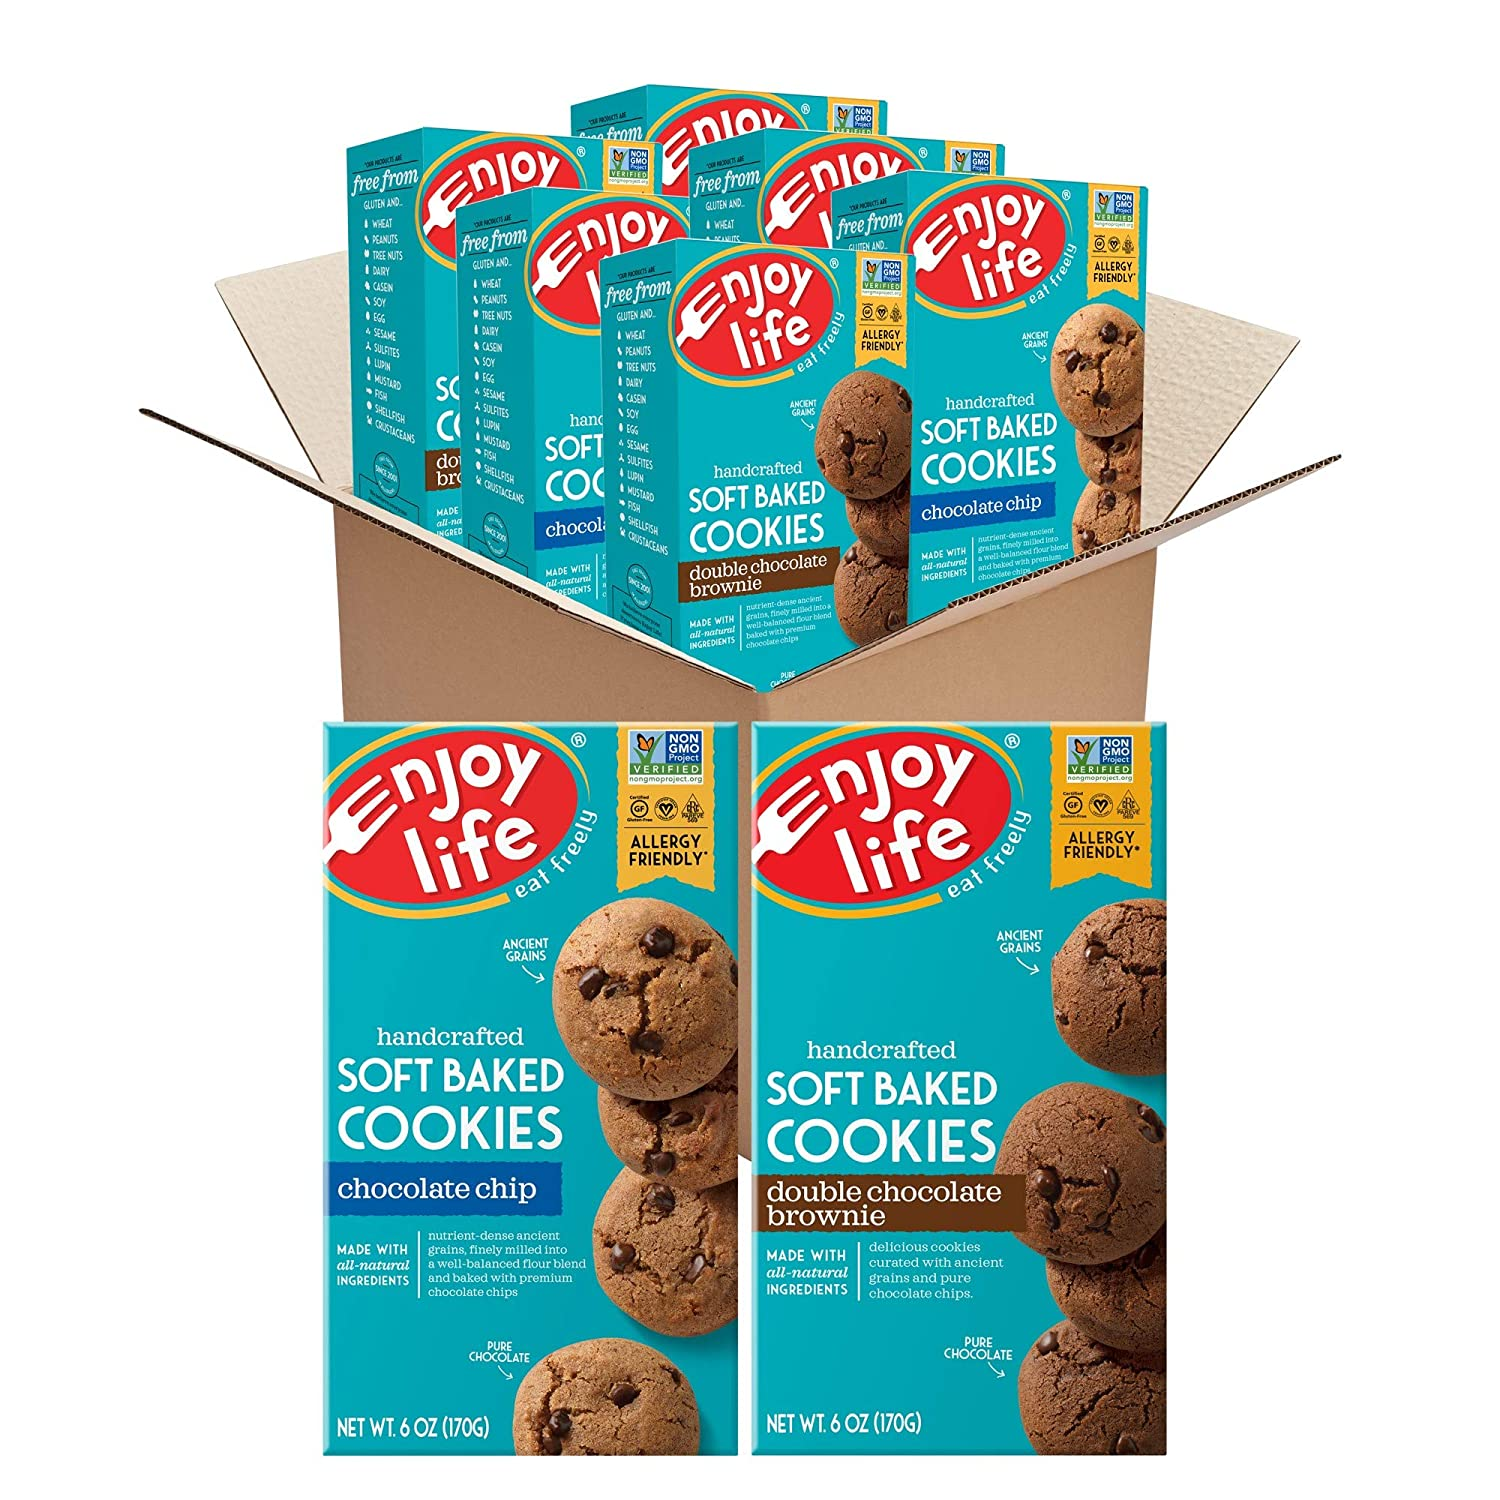 Enjoy Life Foods Enjoy Life Soft Baked Cookies, Chocolate Chip & Double Chocolate Brownie Bundle, Soy Free, Dairy Free, Non GMO, Gluten Free, Vegan, Nut Free Cookies, 6 Boxes, 3Count